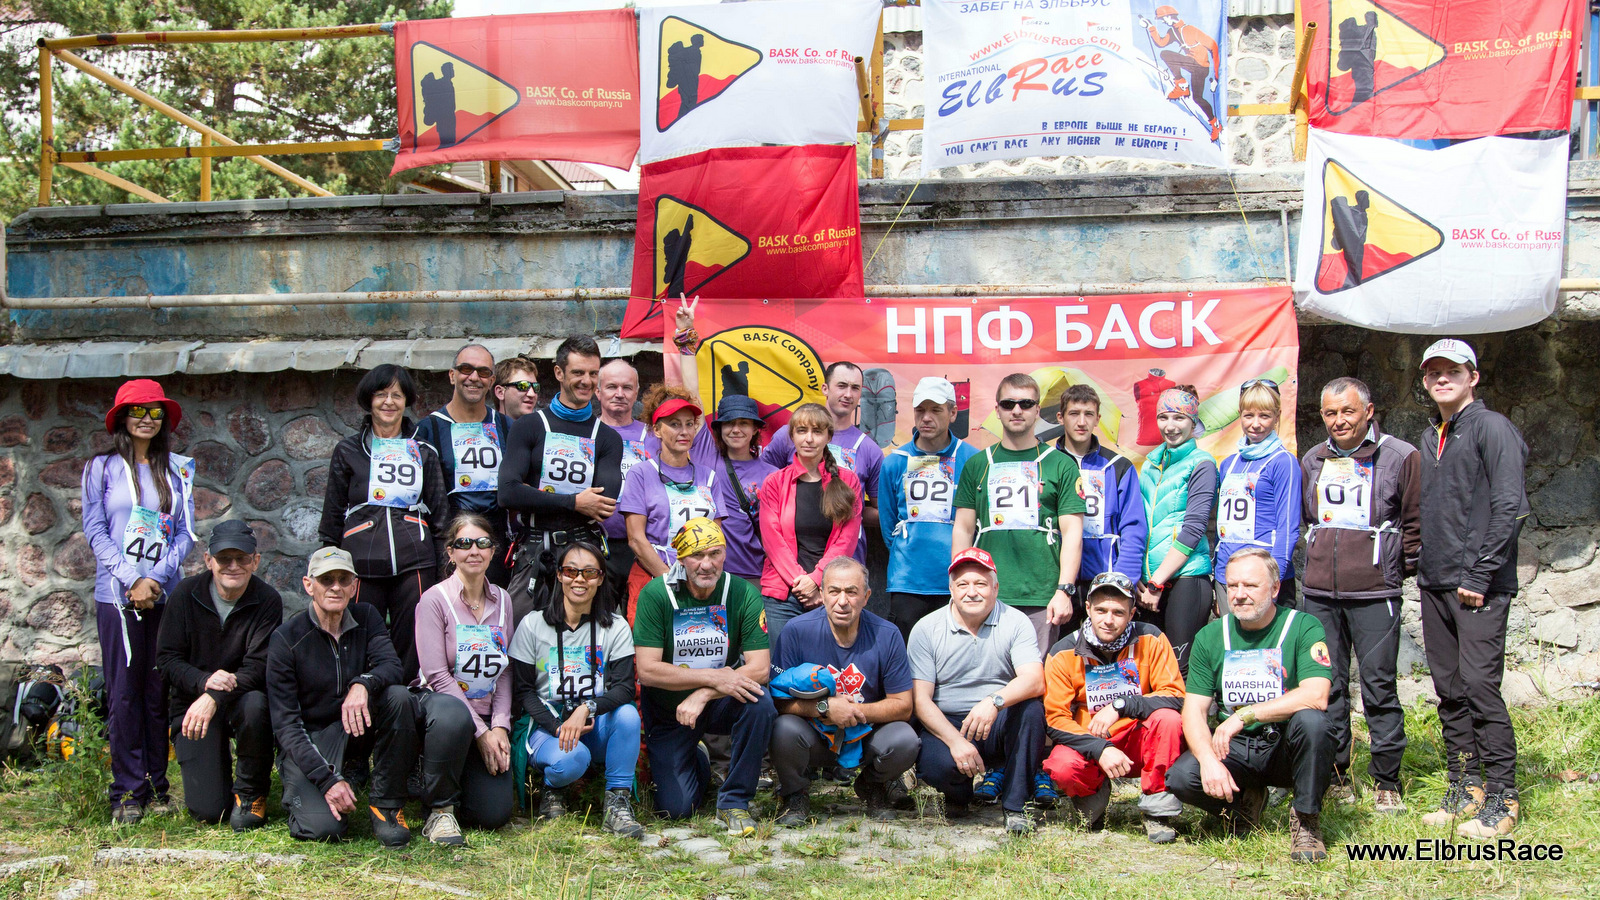 IX international Elbrus Race 2014 opening ceremony